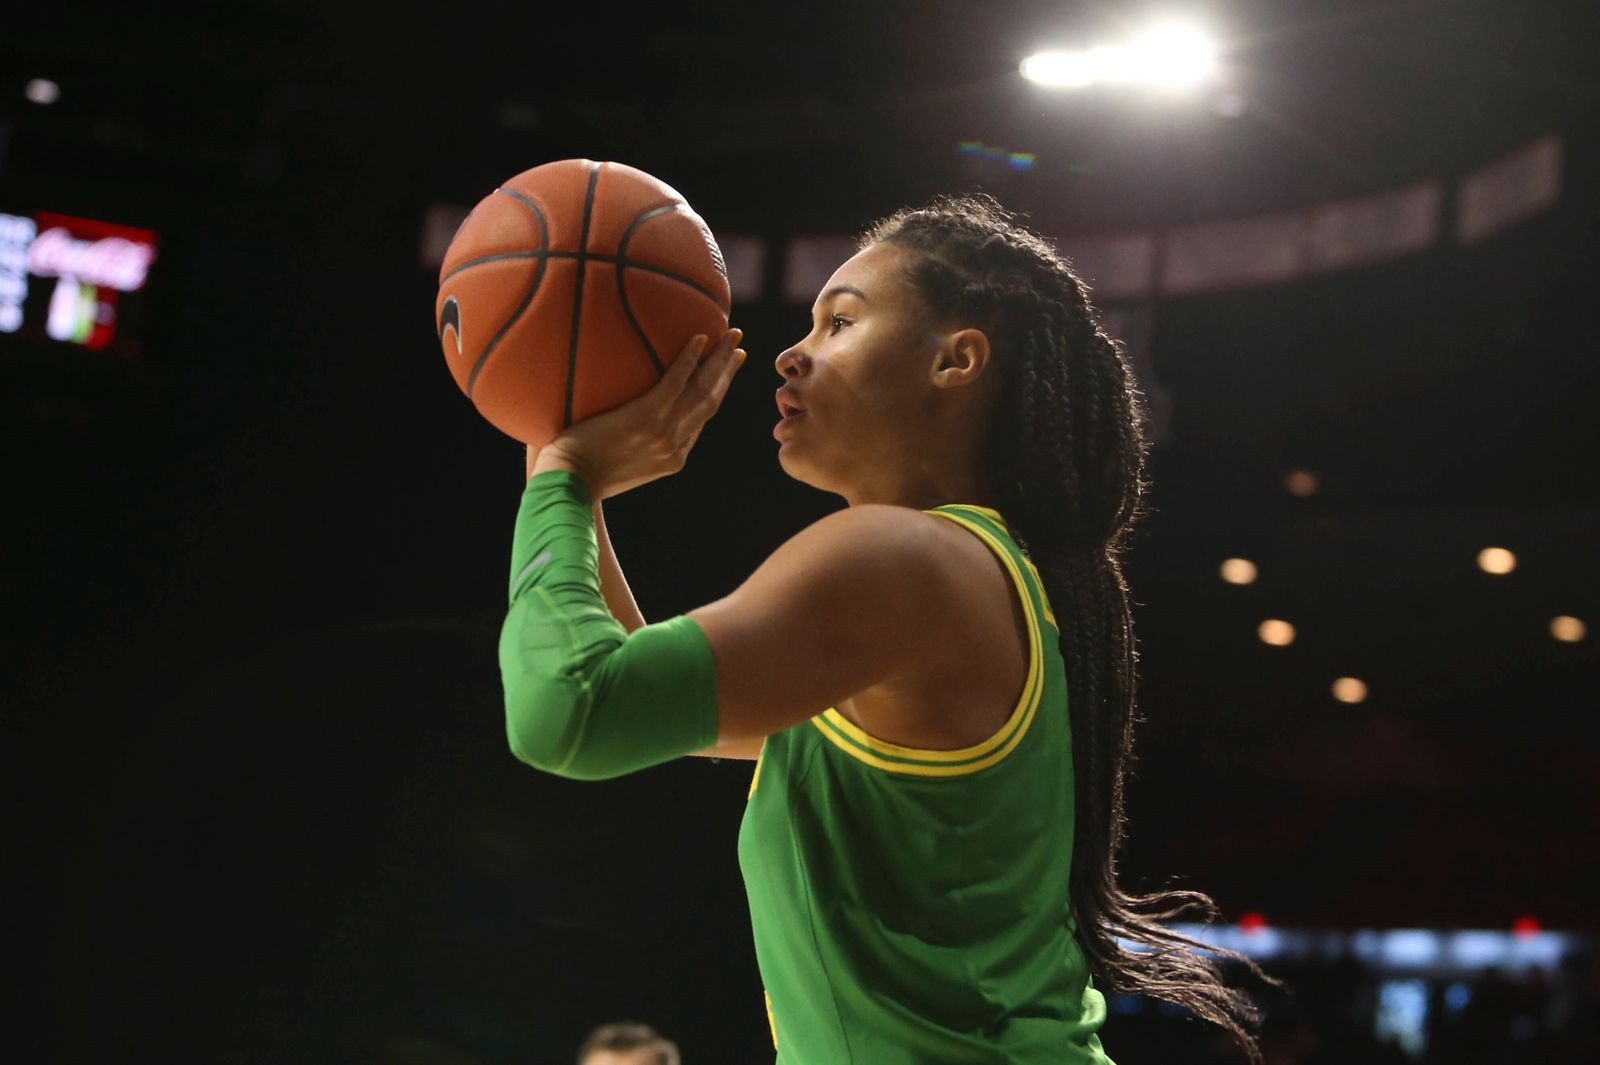 TUCSON, AZ - JANUARY 12: Oregon Ducks forward Satou Sabally (0) shoots the ball during a college women s basketball gam